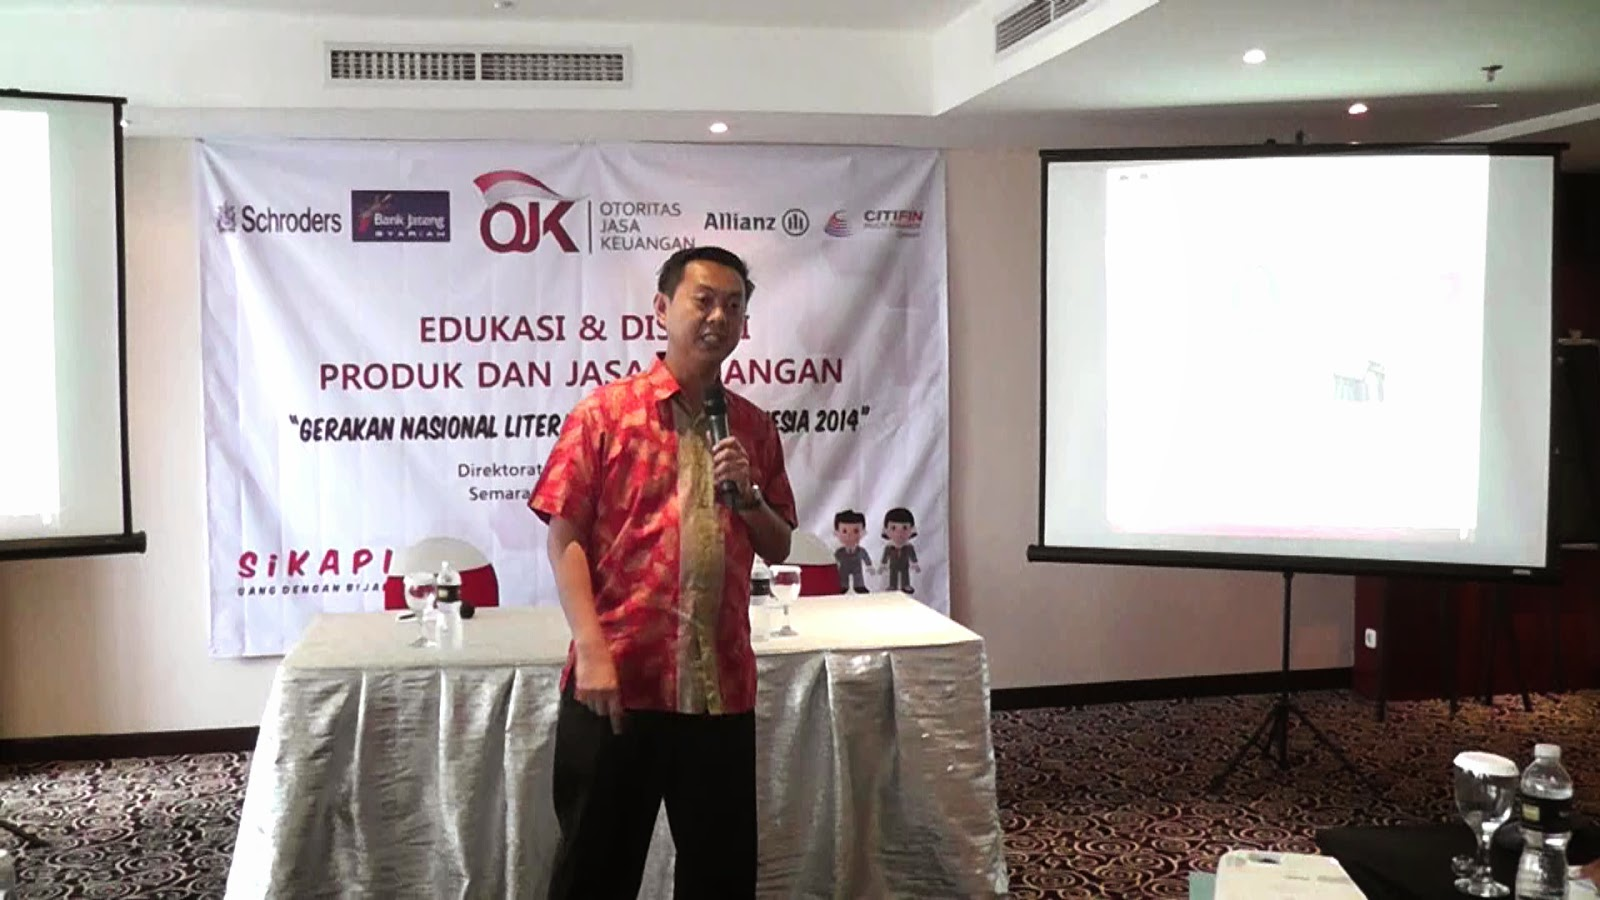 Jasa Video Shooting seminar semarang